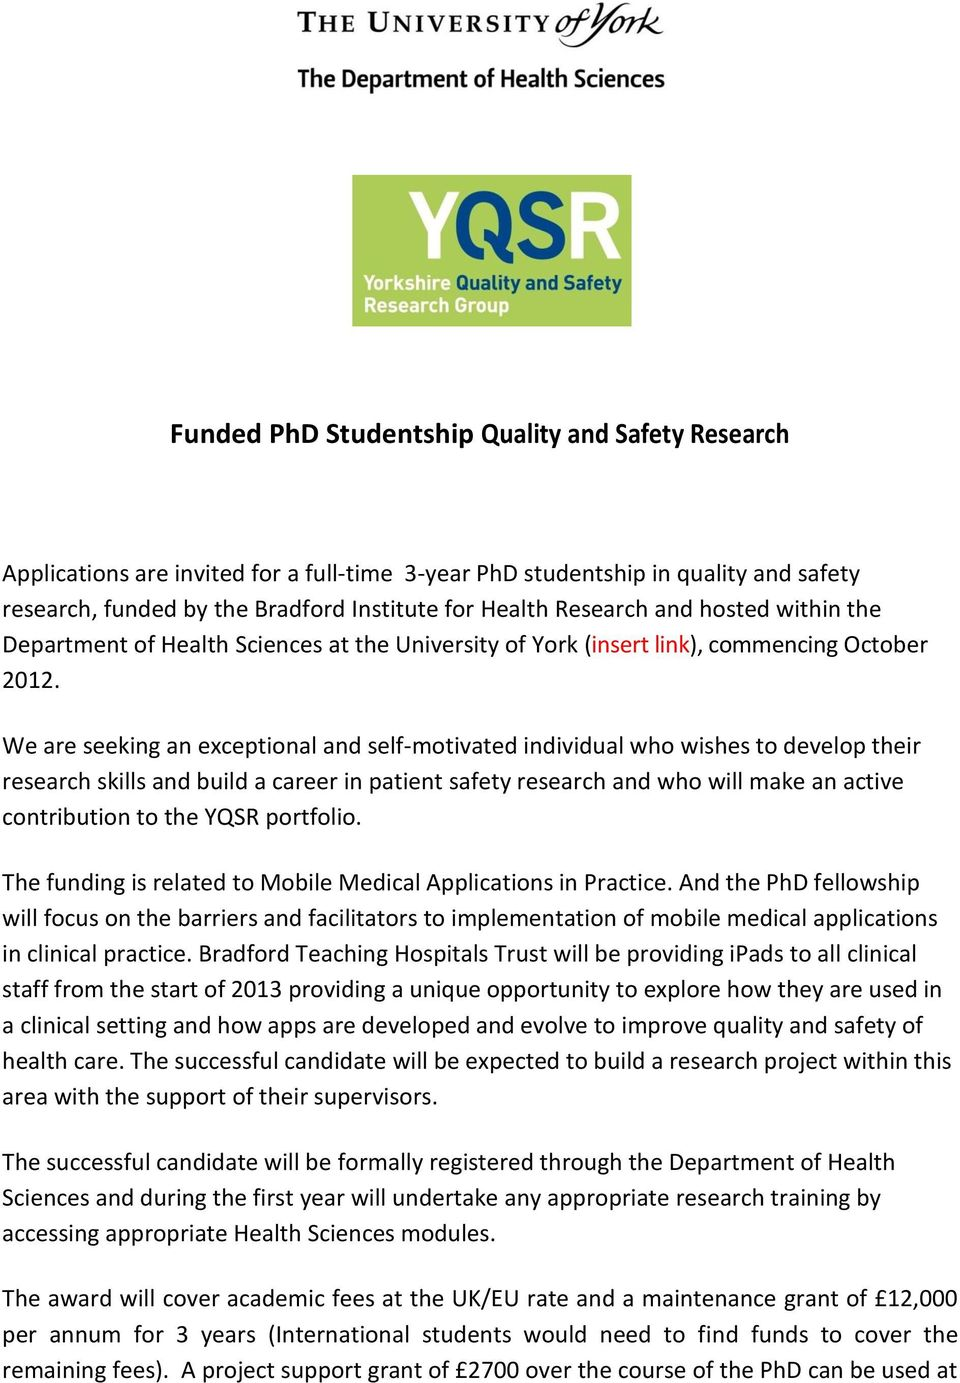 We are seeking an exceptional and self-motivated individual who wishes to develop their research skills and build a career in patient safety research and who will make an active contribution to the